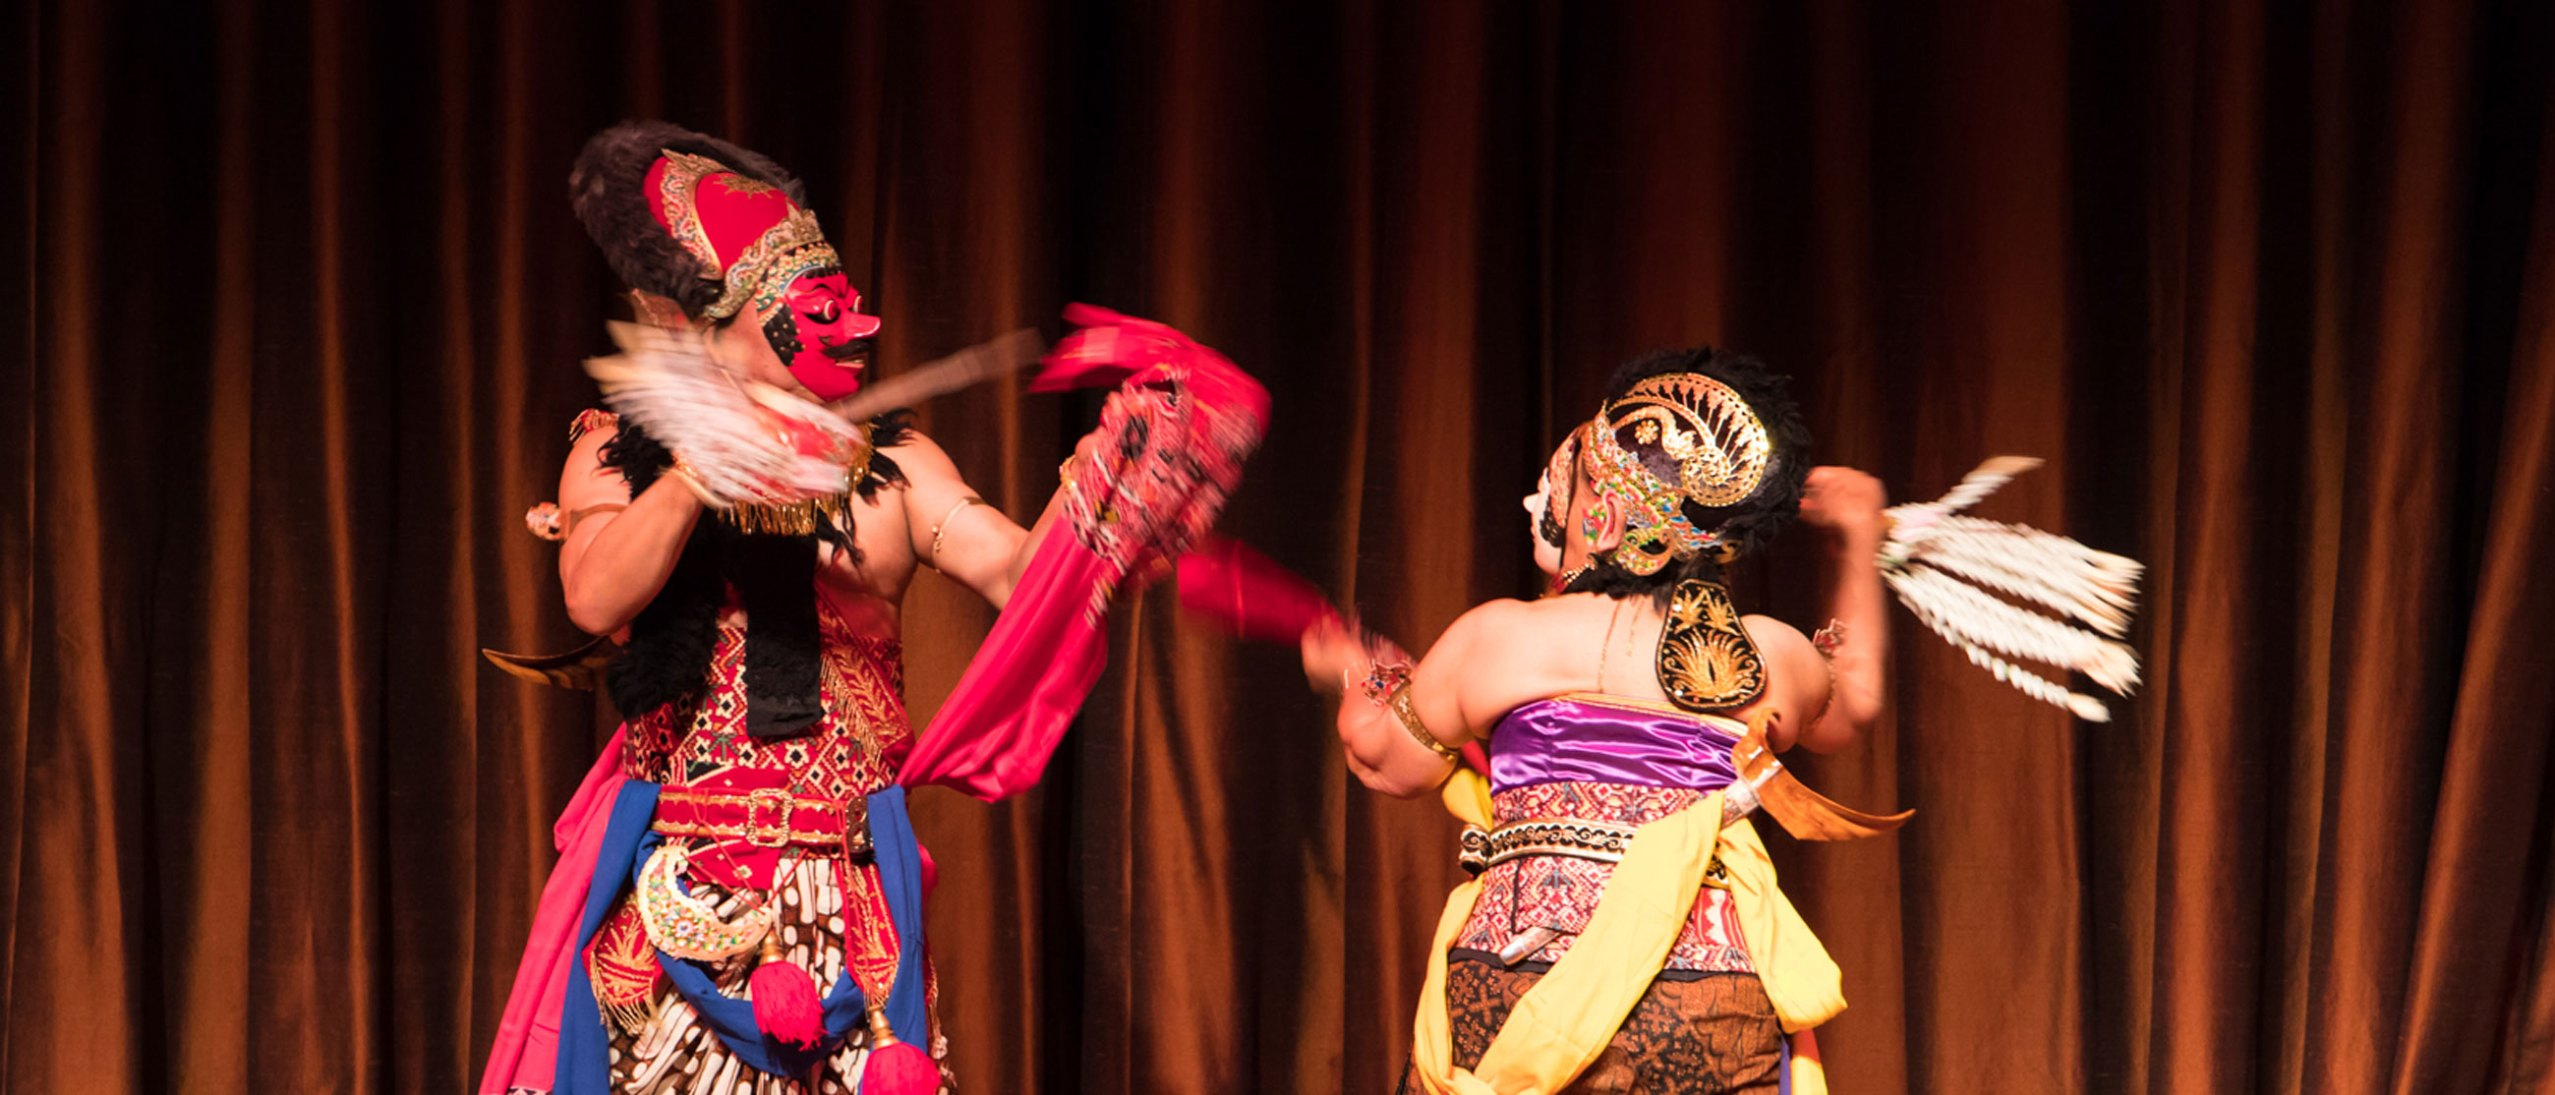 Indonesian dancers perform in the Meyer Auditorium at the Freer|sackler